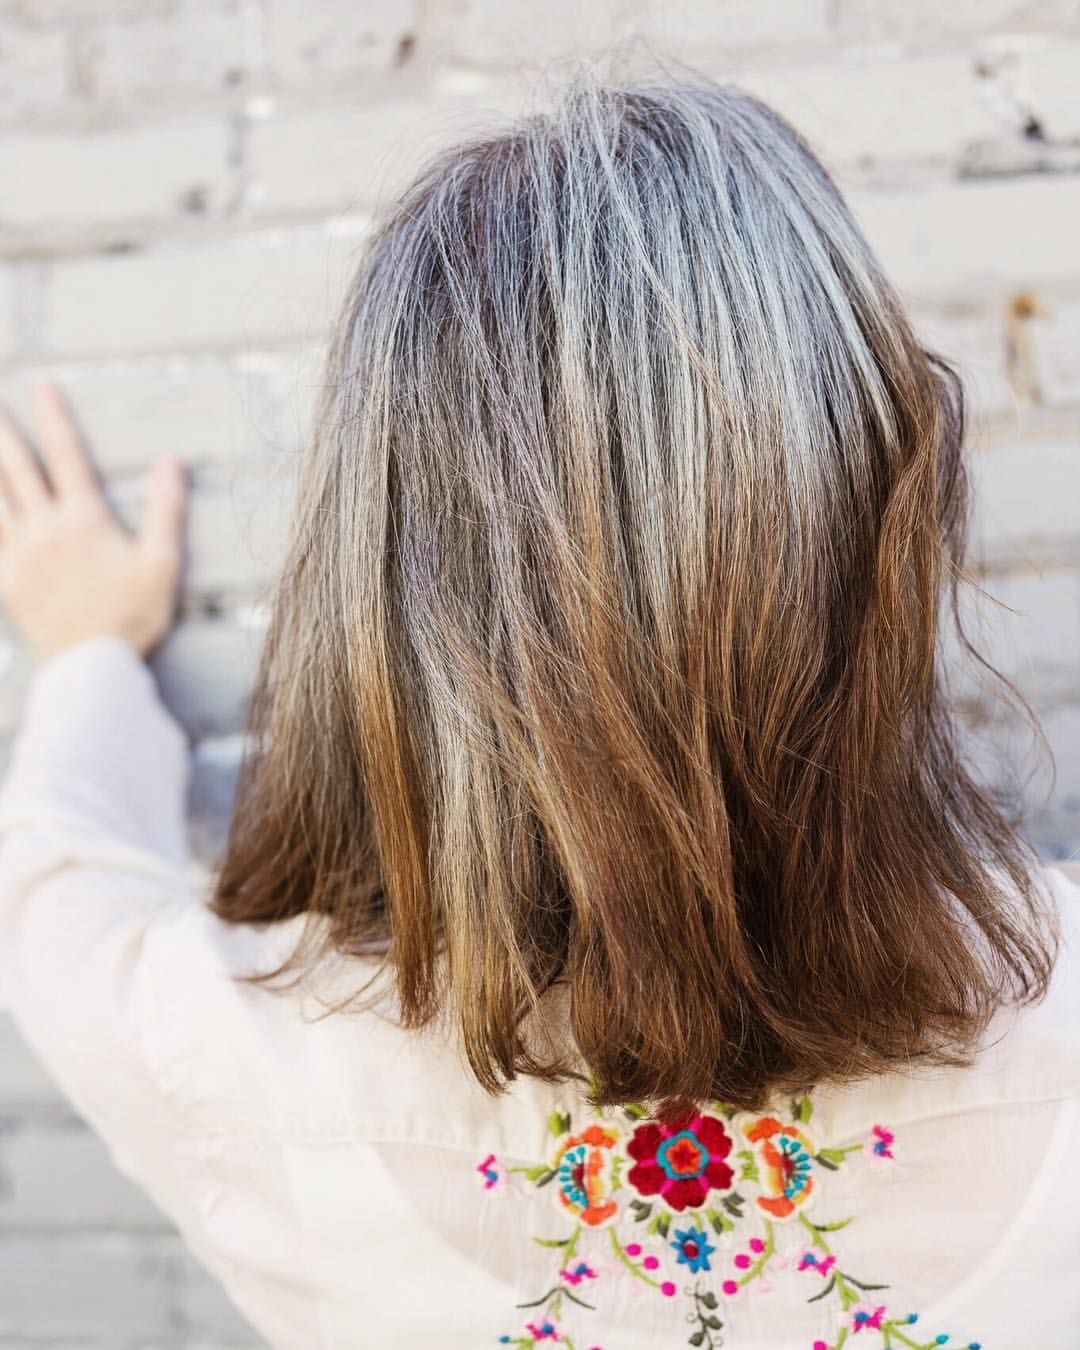 14 Likes 2 Comments Katie Gray Hair Blogger Katiegoesplatinum On Instagram The Back Of My Calico Head 1 Hair Blogger Hair Dark Hair With Highlights